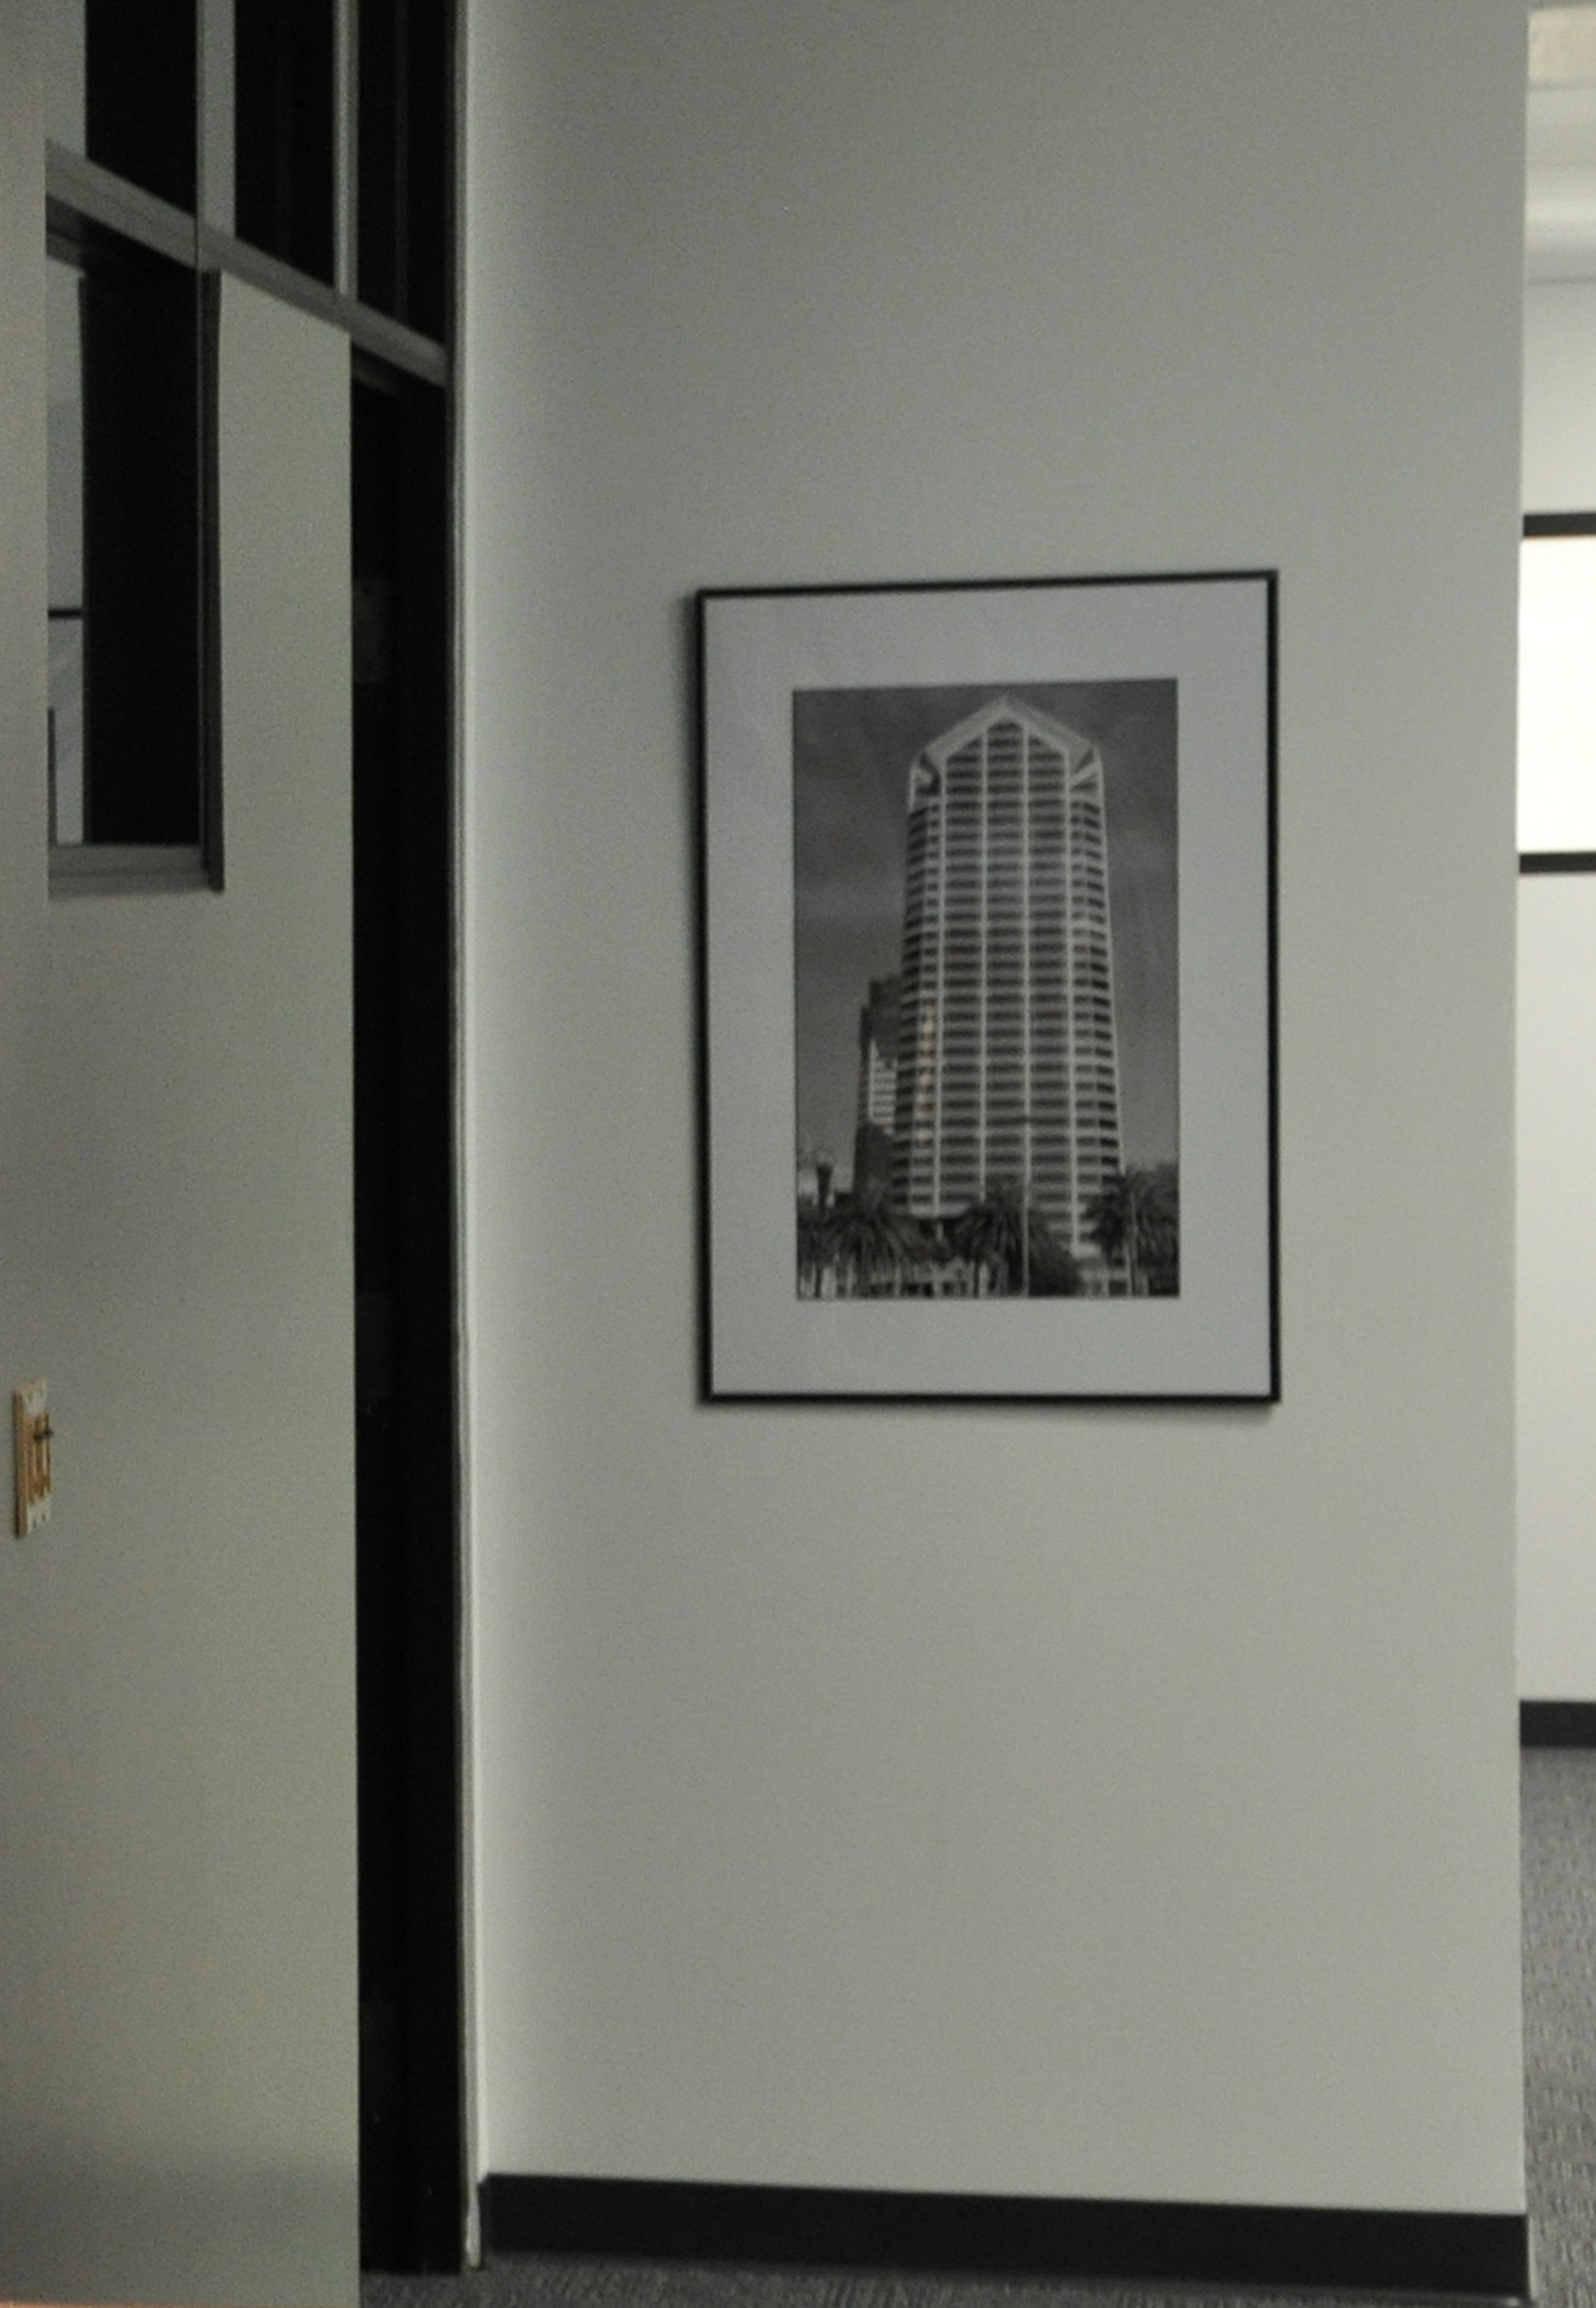 framed tower piece hung on wall